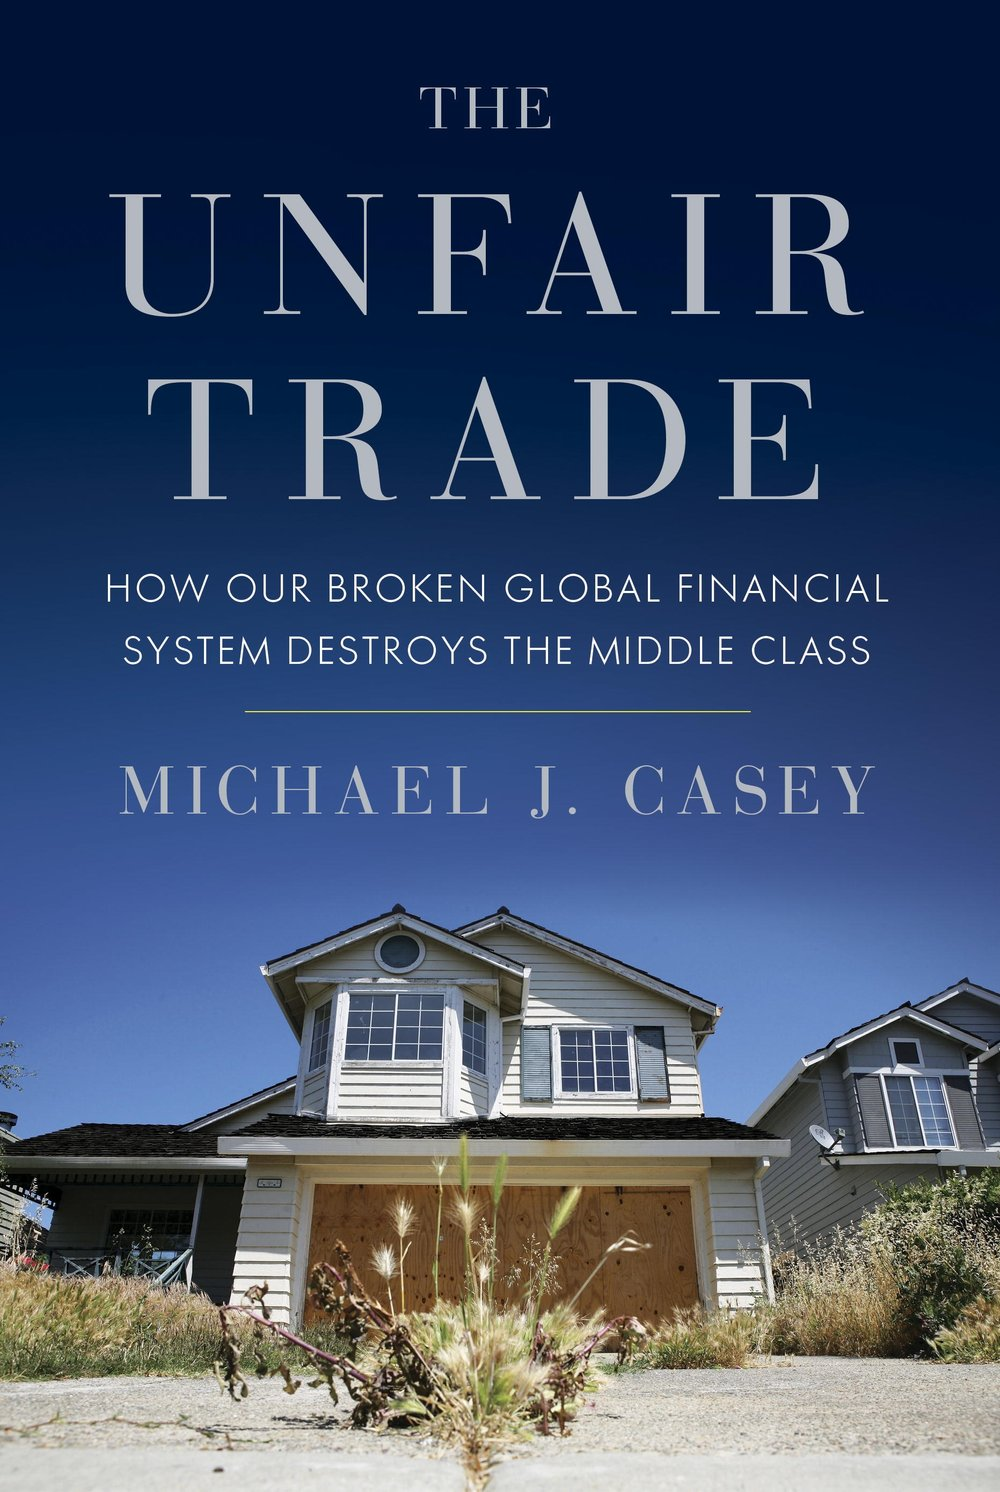 Cover Image-Unfair Trade (1).JPG